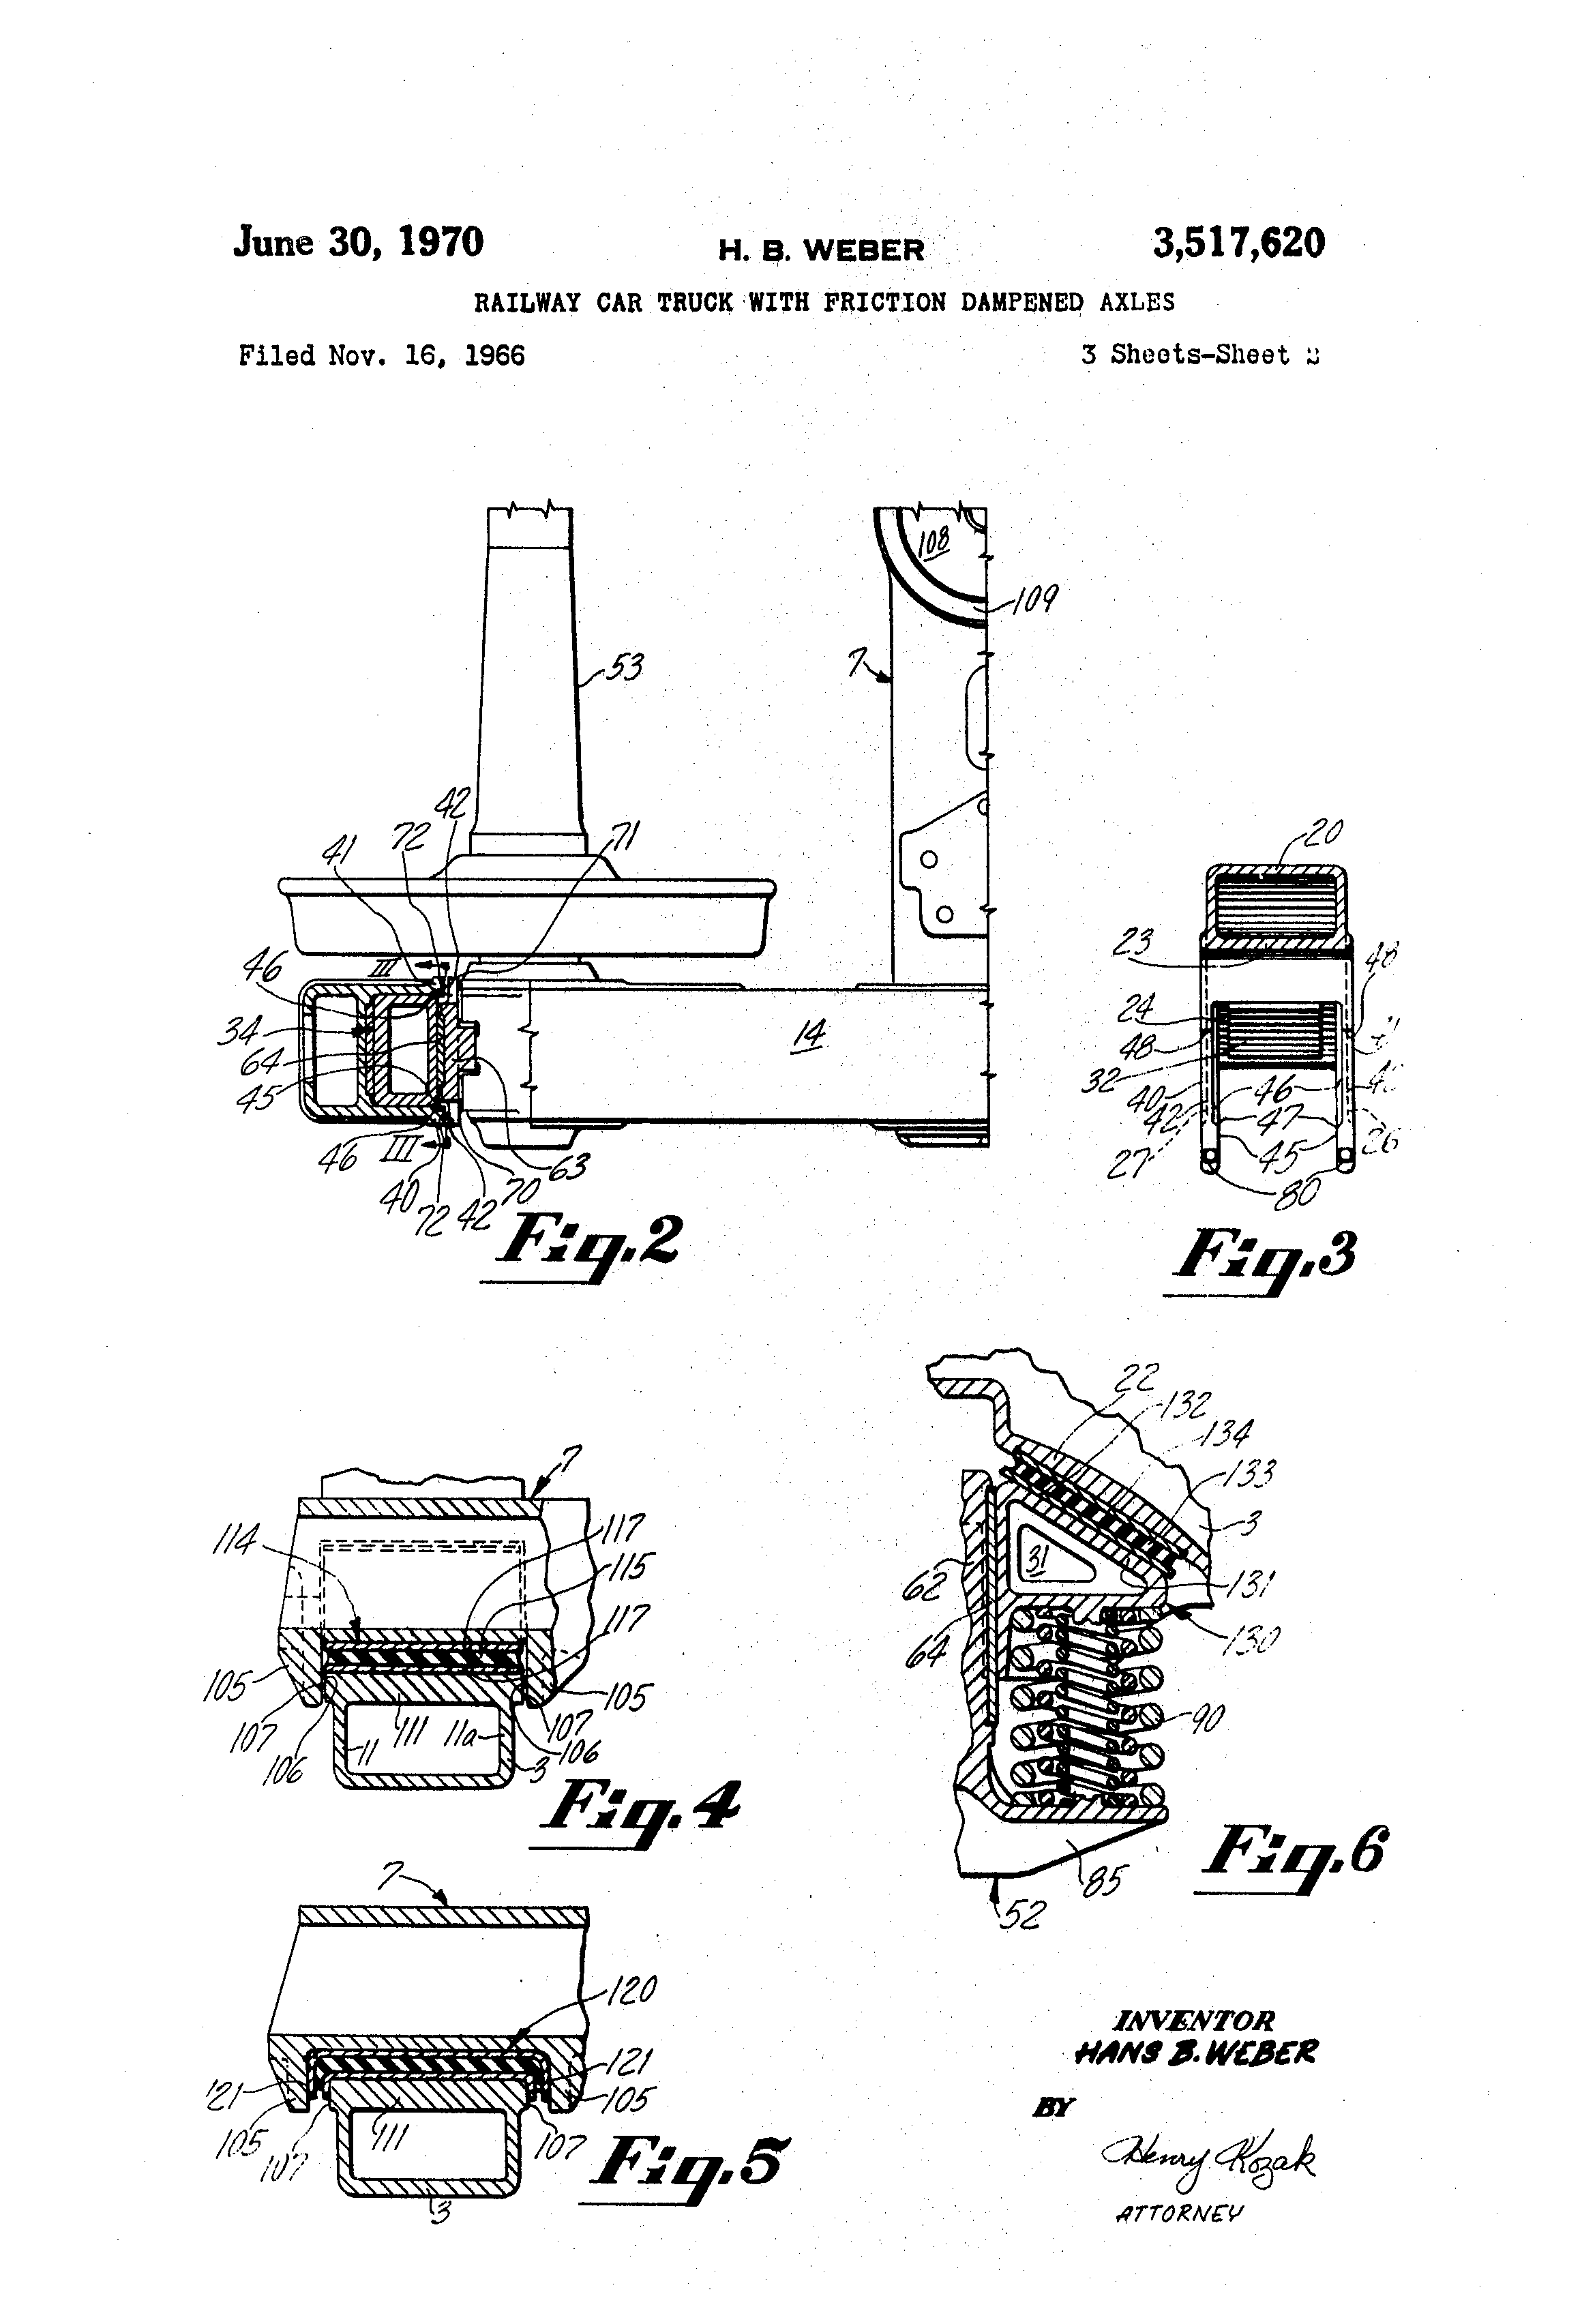 Patent US3517620 - Railway car truck with friction dampened